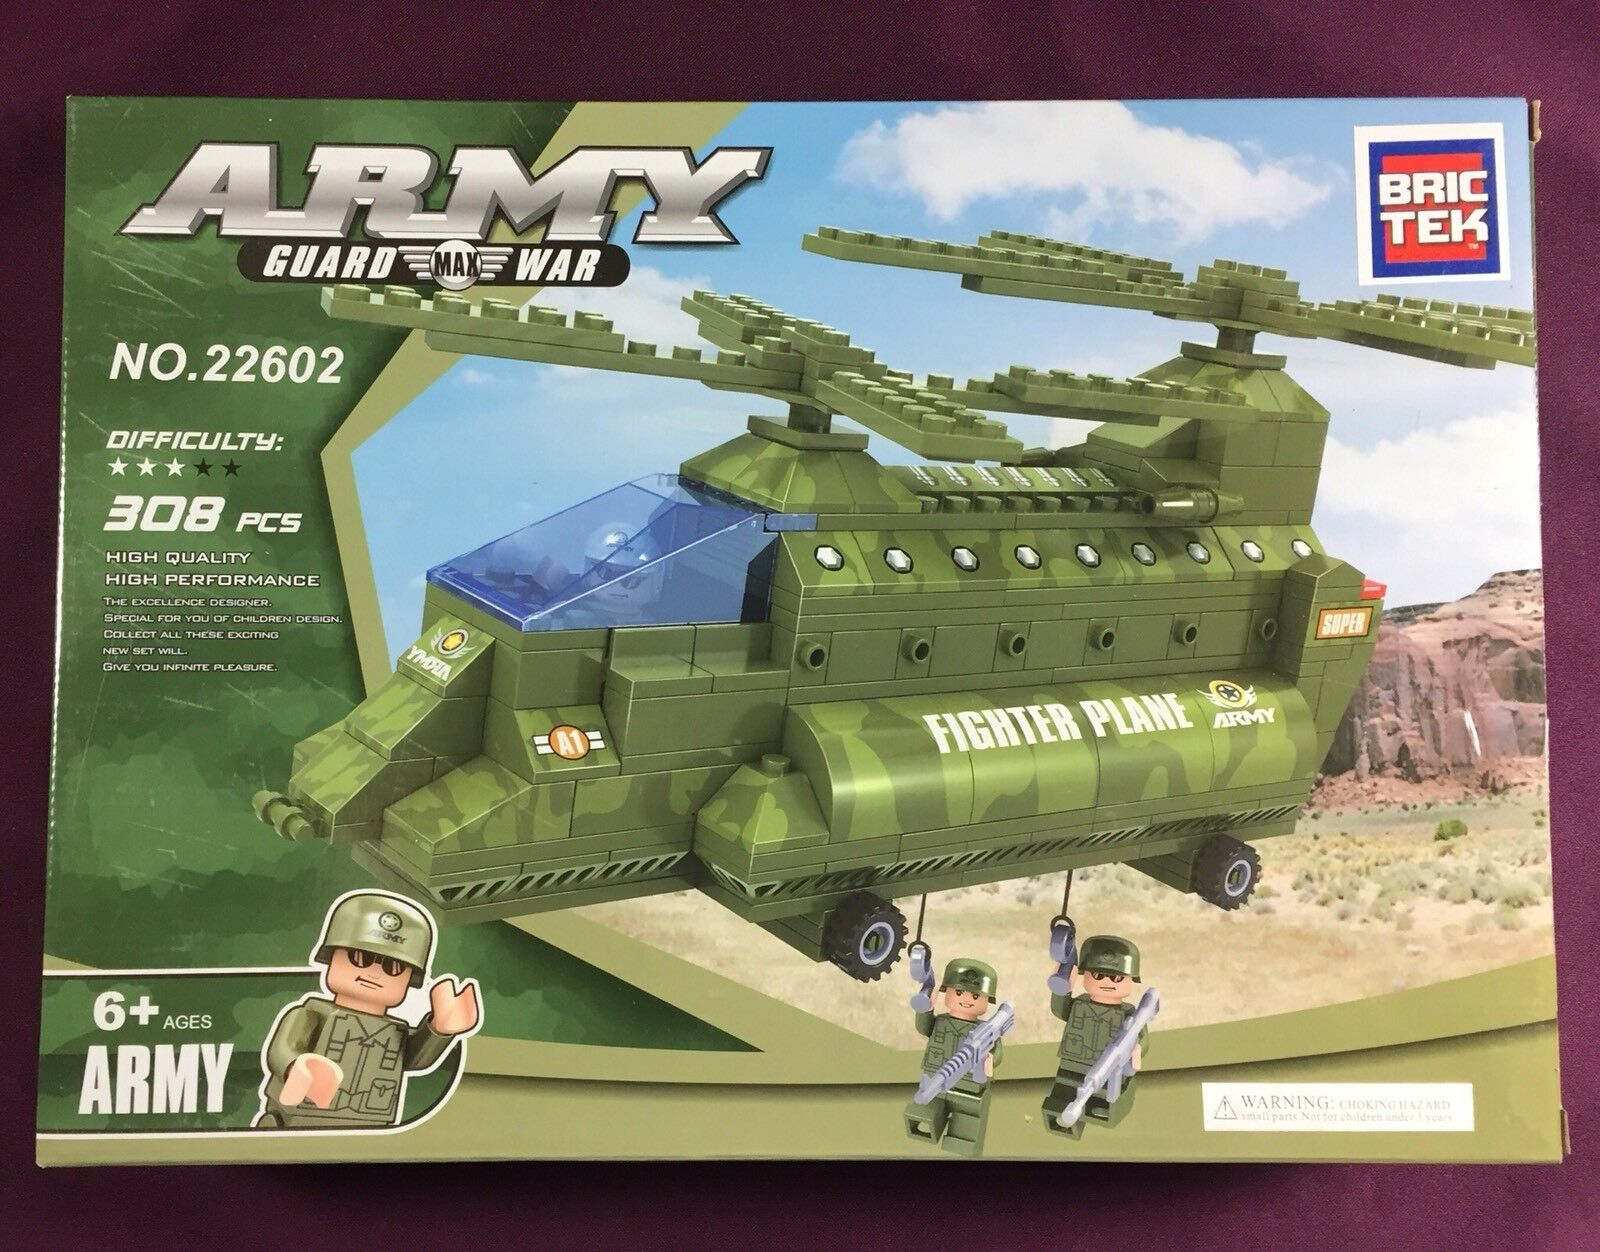 Bric Tek Brictek Army Double Rotor Helicopter 308 Pcs 22602 New Never Built